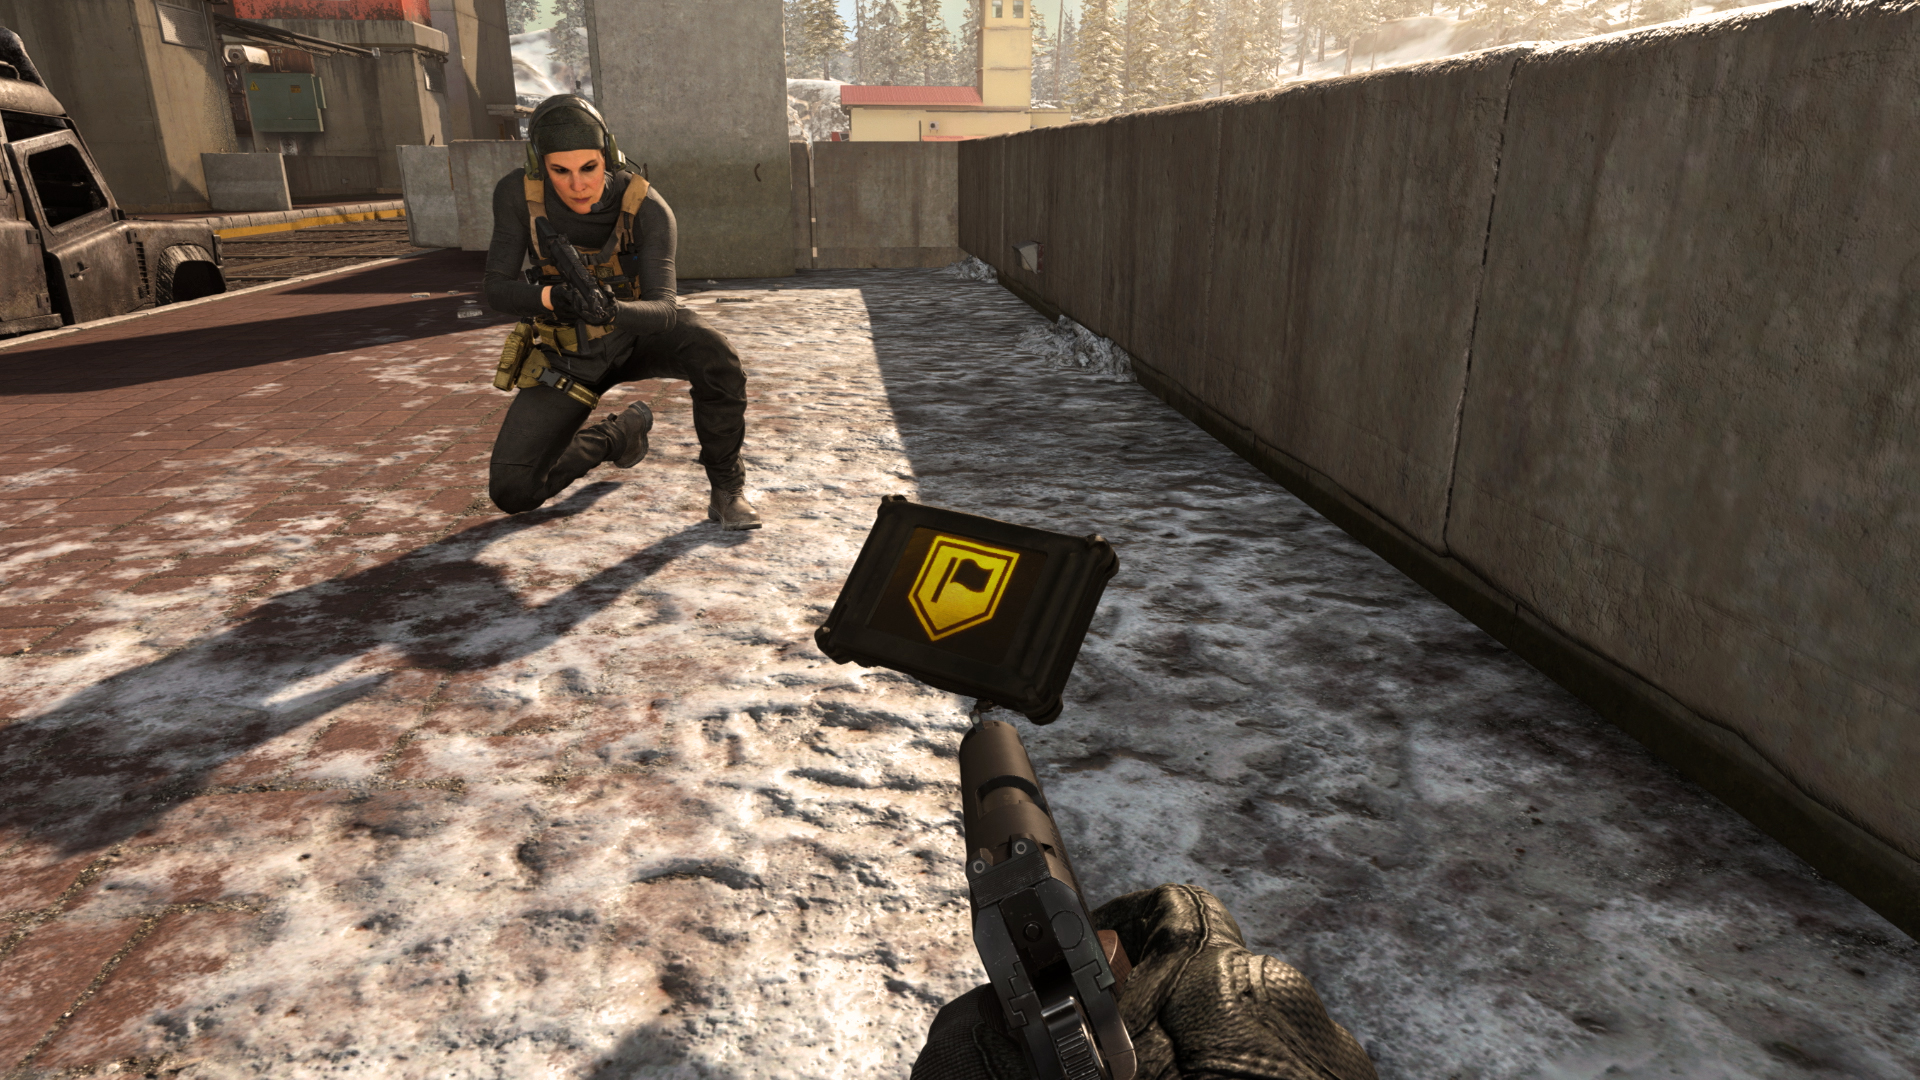 A female soldier crouches next to a hovering black box with a yellow flag symbol on it.